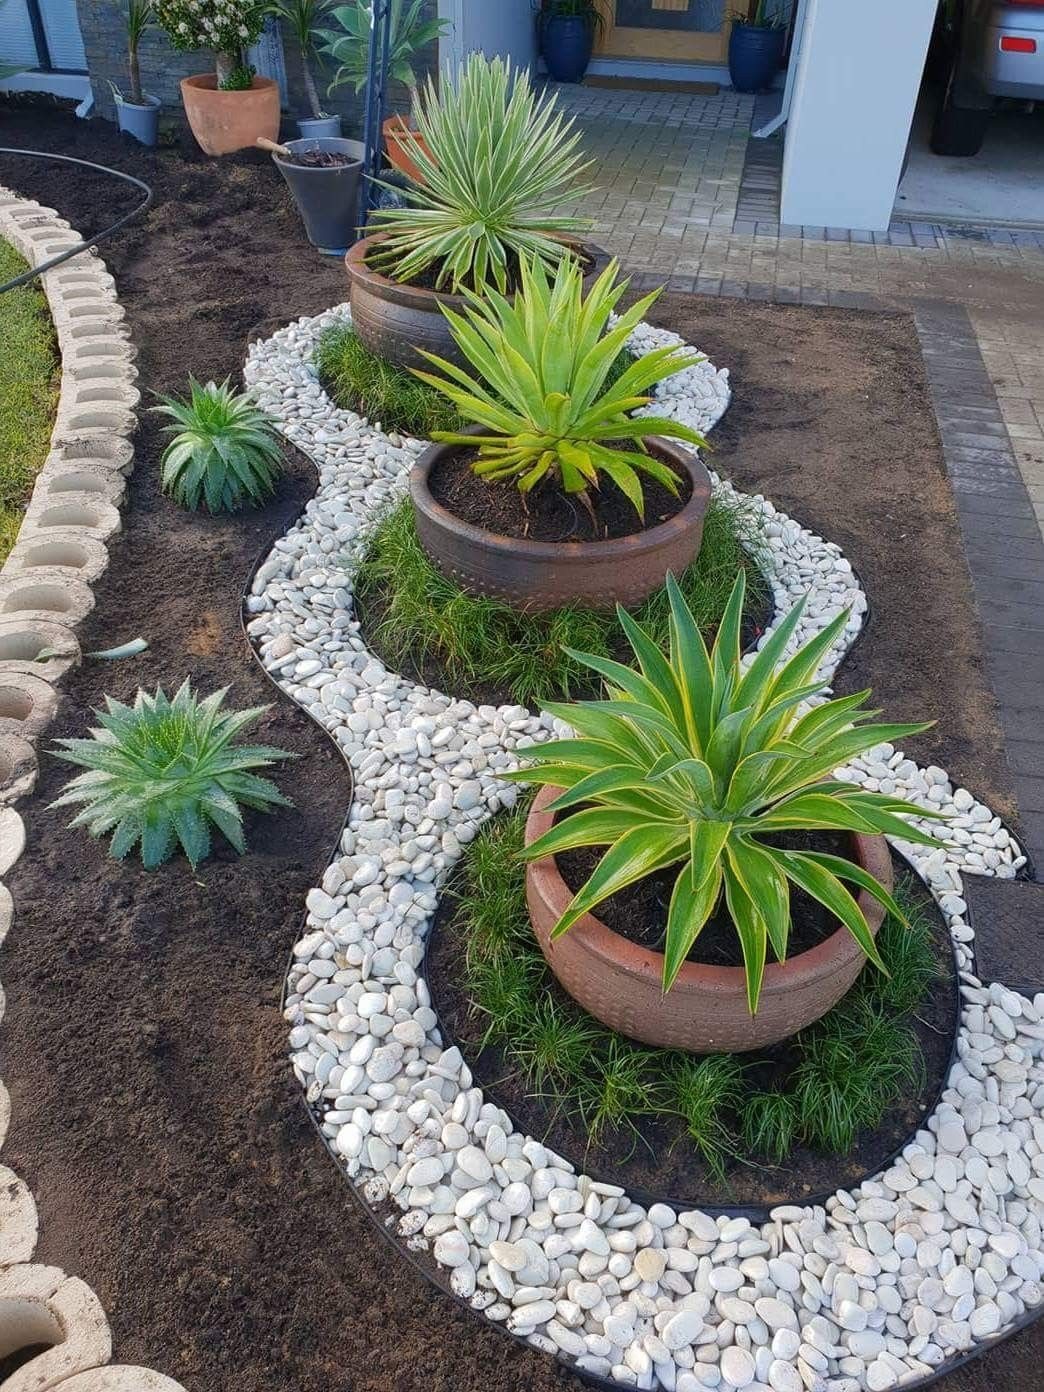 51 Simple Front Yard Landscaping Ideas On A Budget 2018 Em 2020